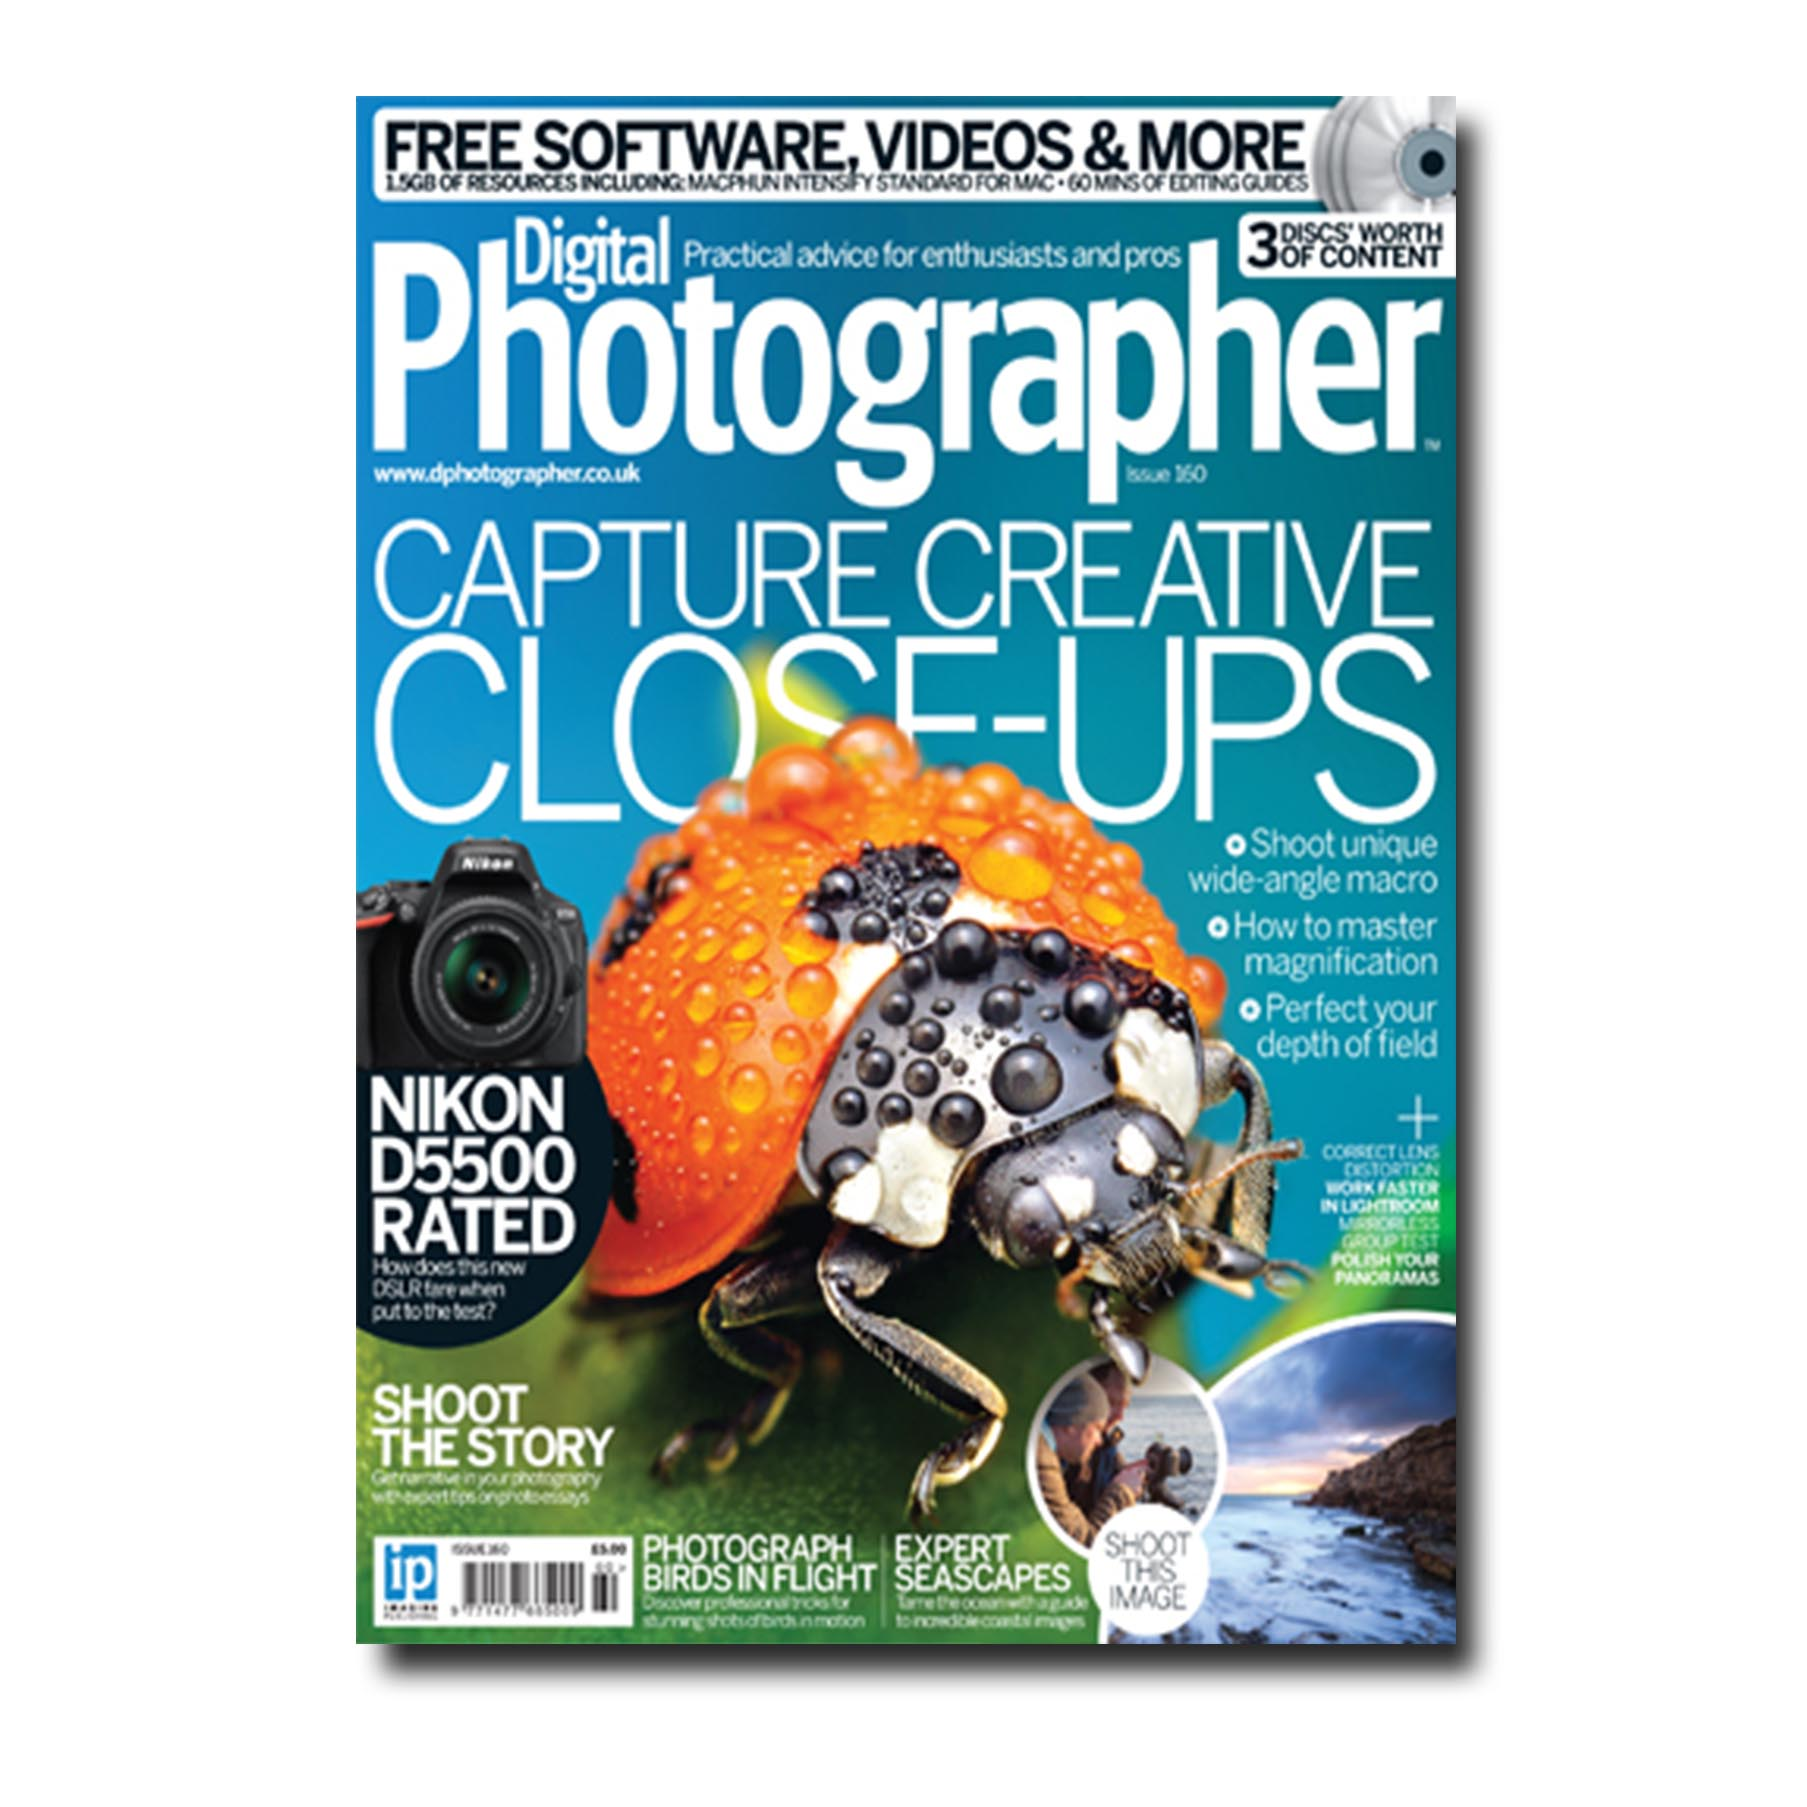 Creative close ups digital photography tips and techniques Banners Vinyl Banners Printing @ 6.99/SF Custom